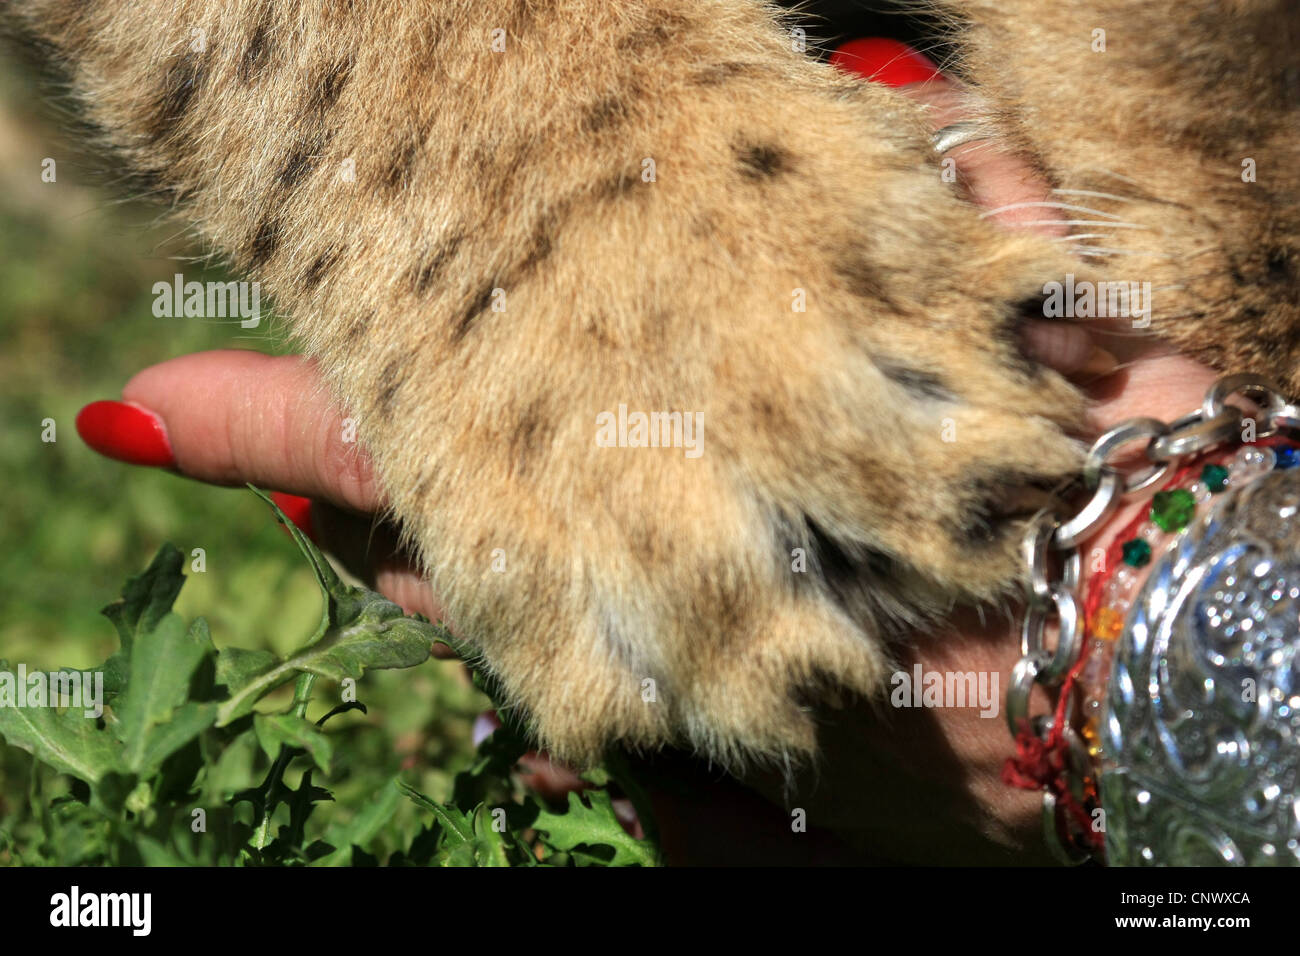 Lion cub interacts with Volunteer worker - Stock Image